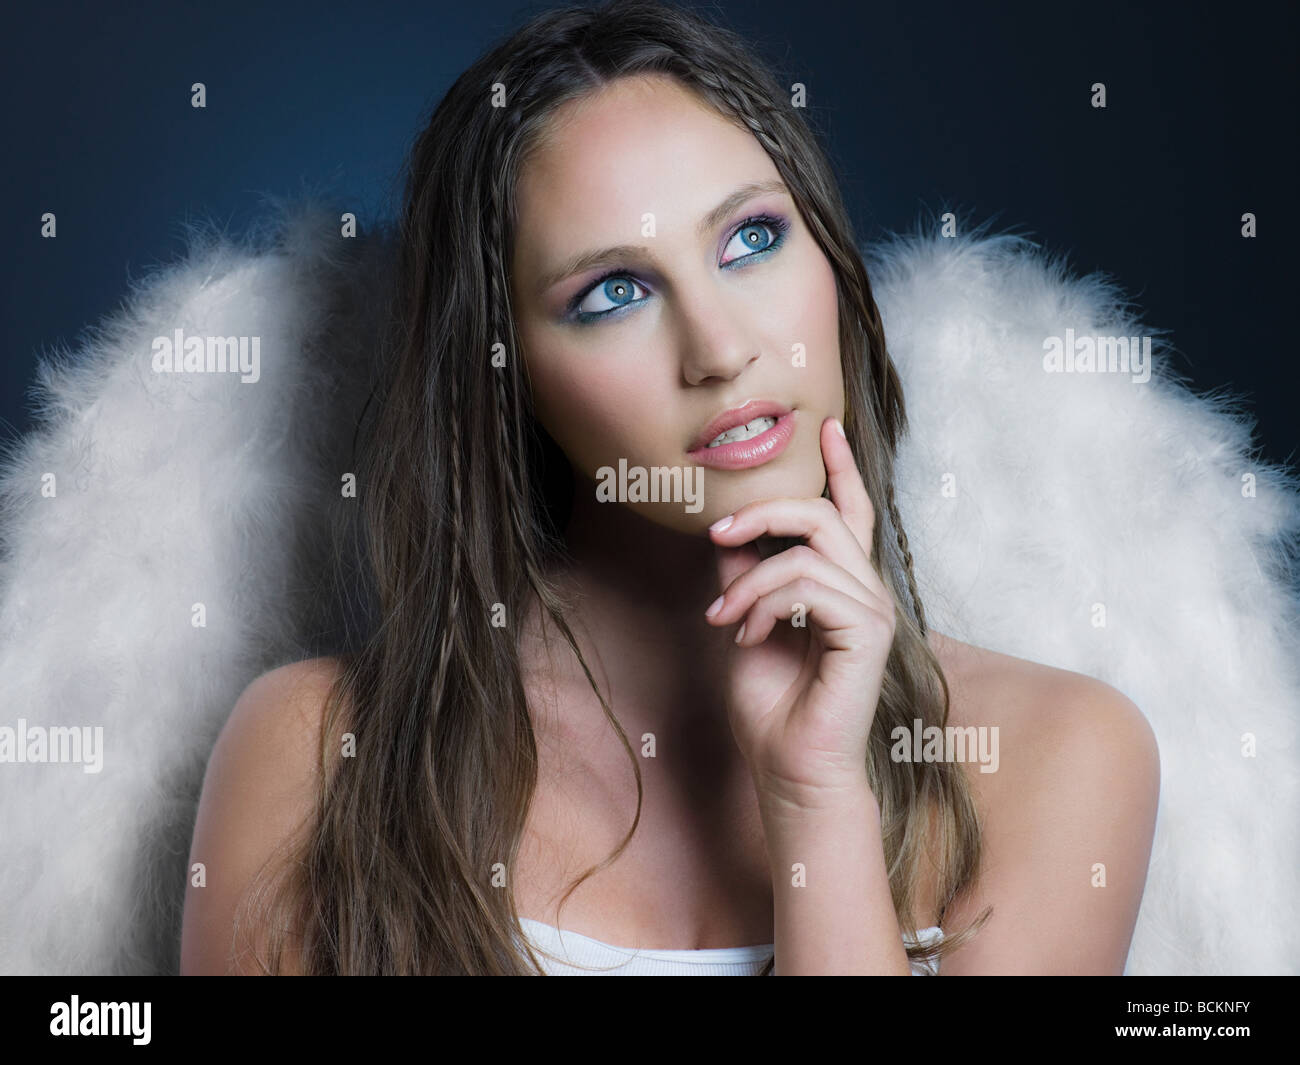 Girl with angel wings - Stock Image